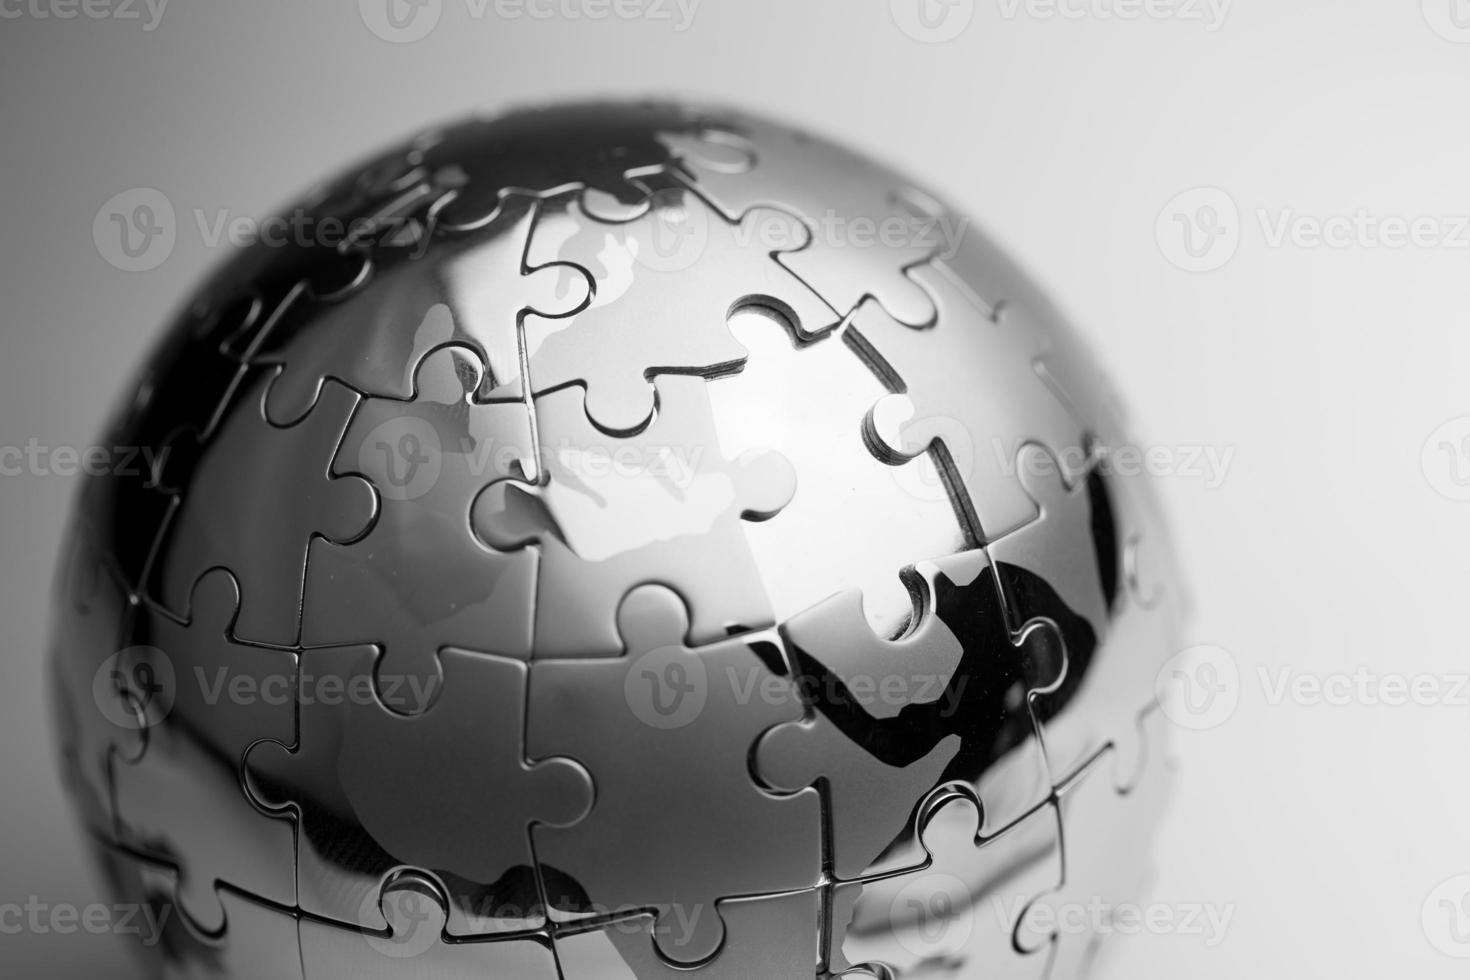 Global strategy  & solution business concept, jigsaw puzzle photo